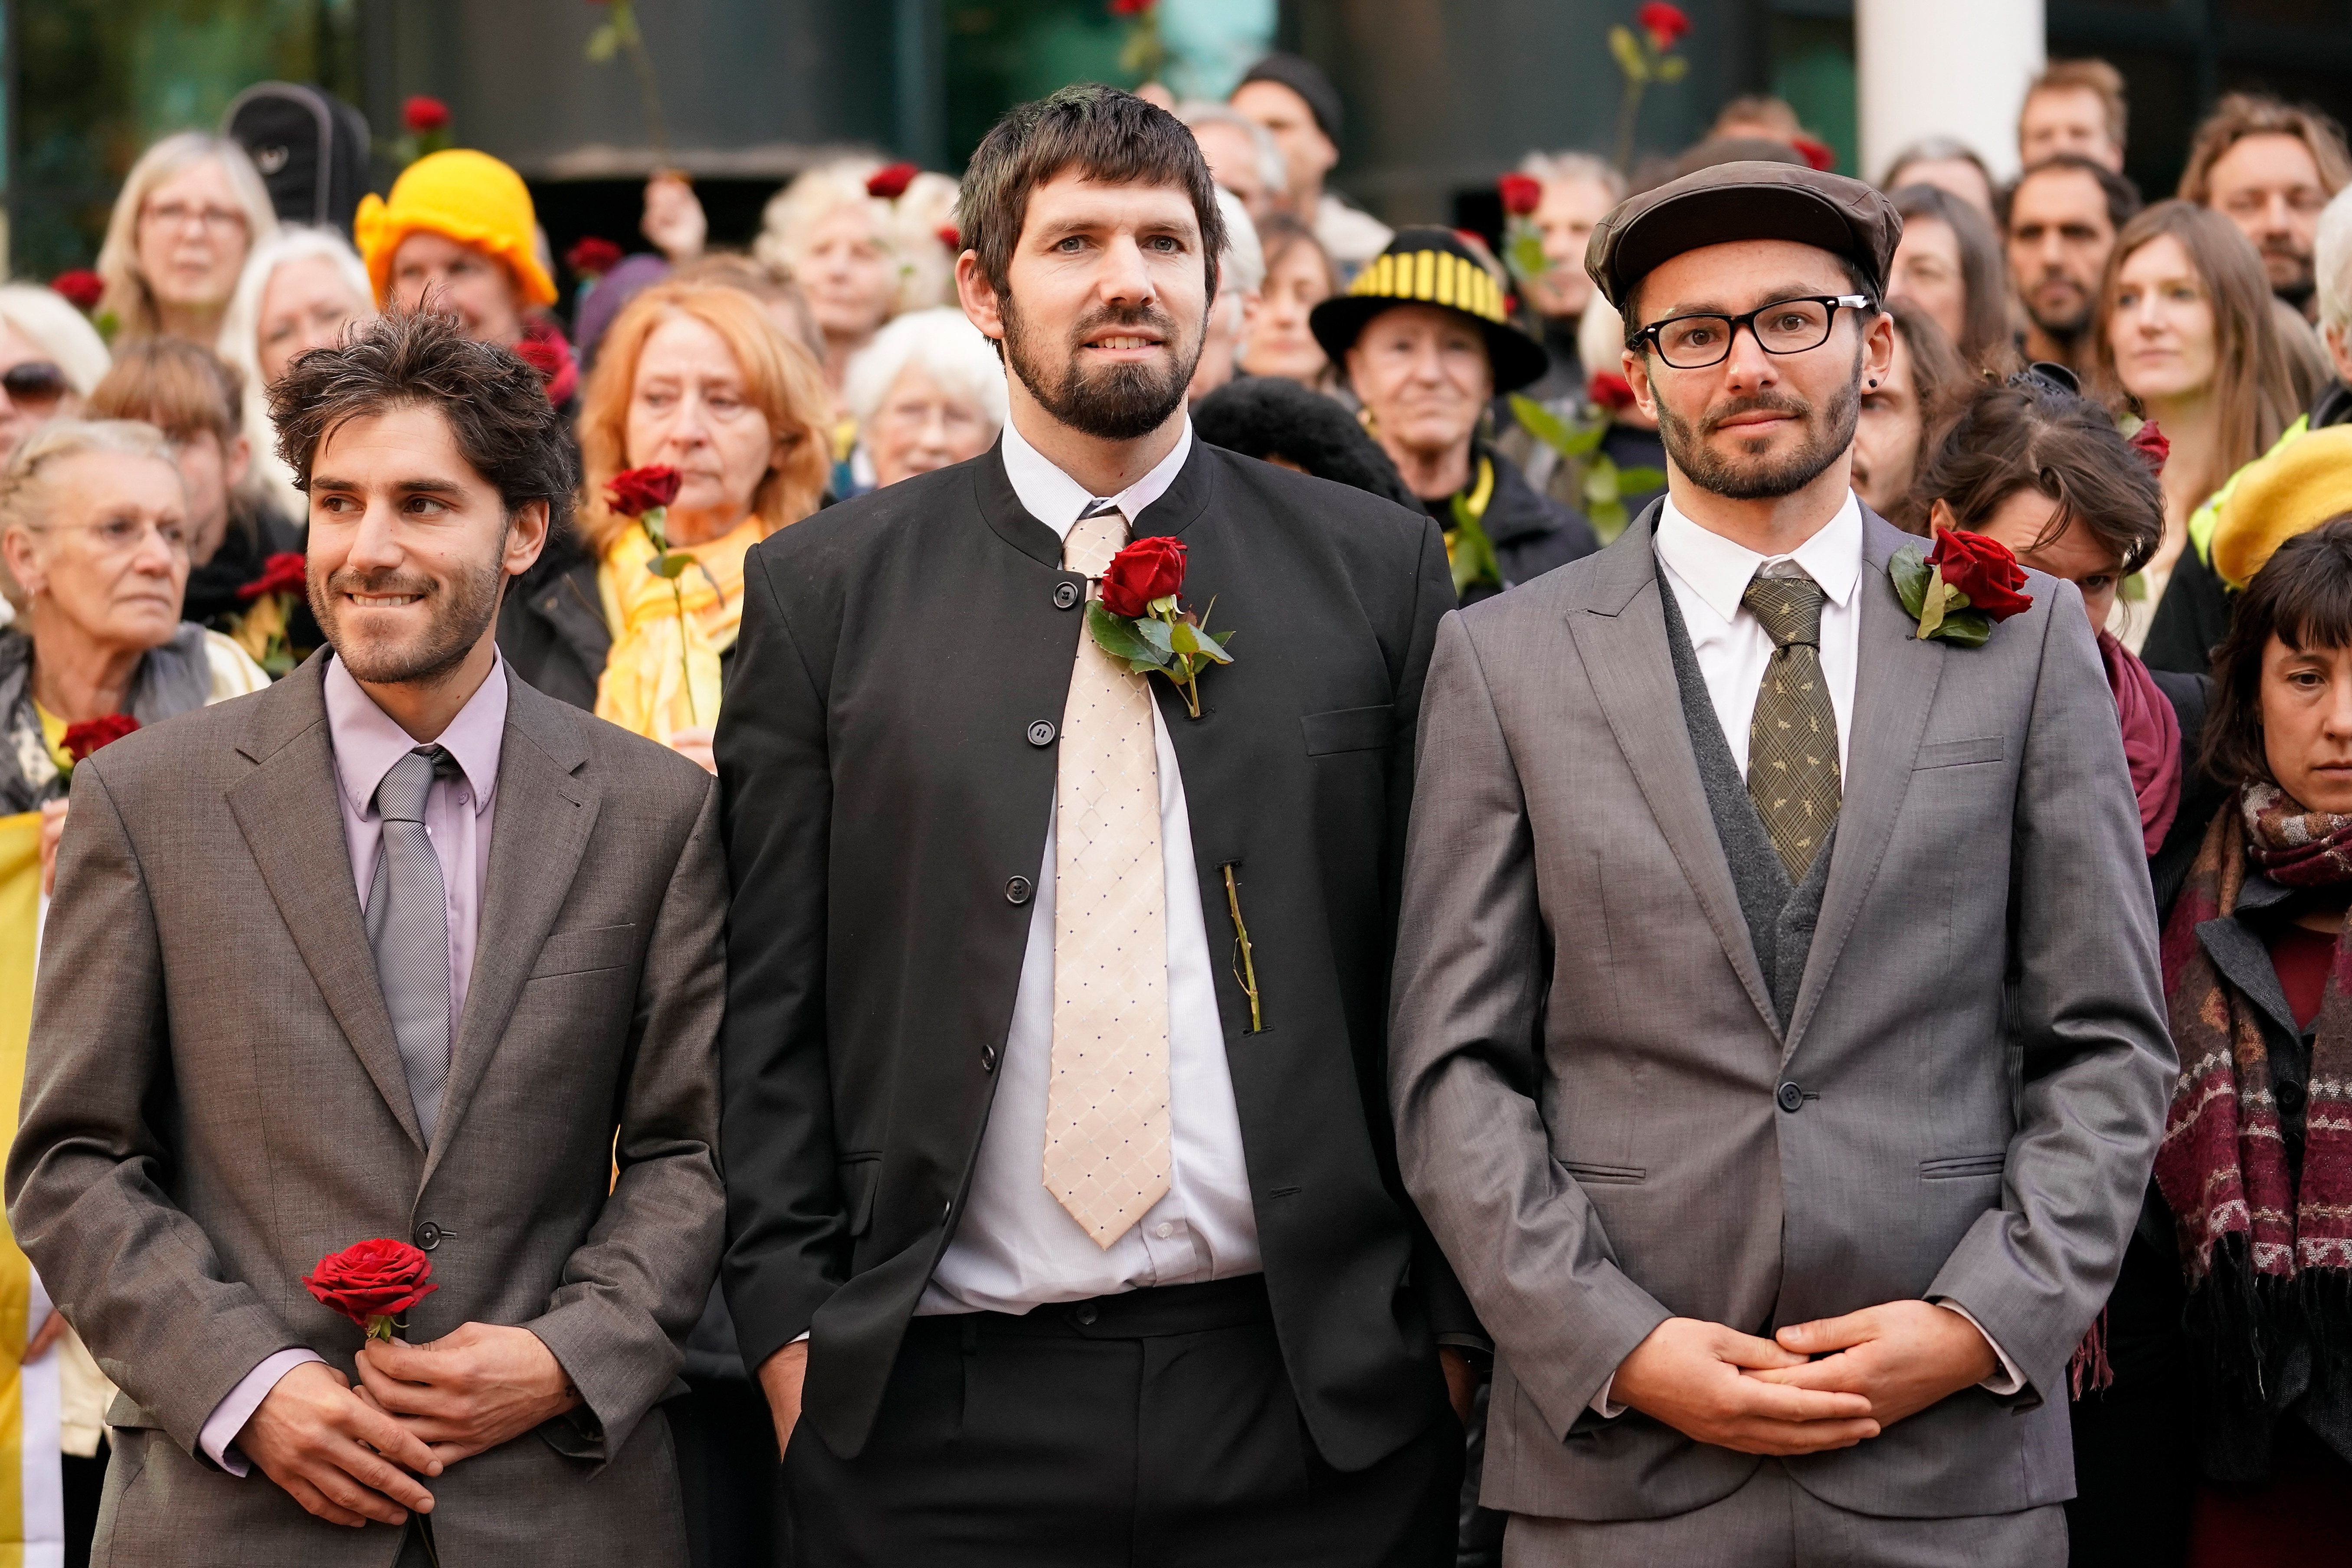 These Men Staged A Peaceful Protest Against Fracking. The U.K. Jailed